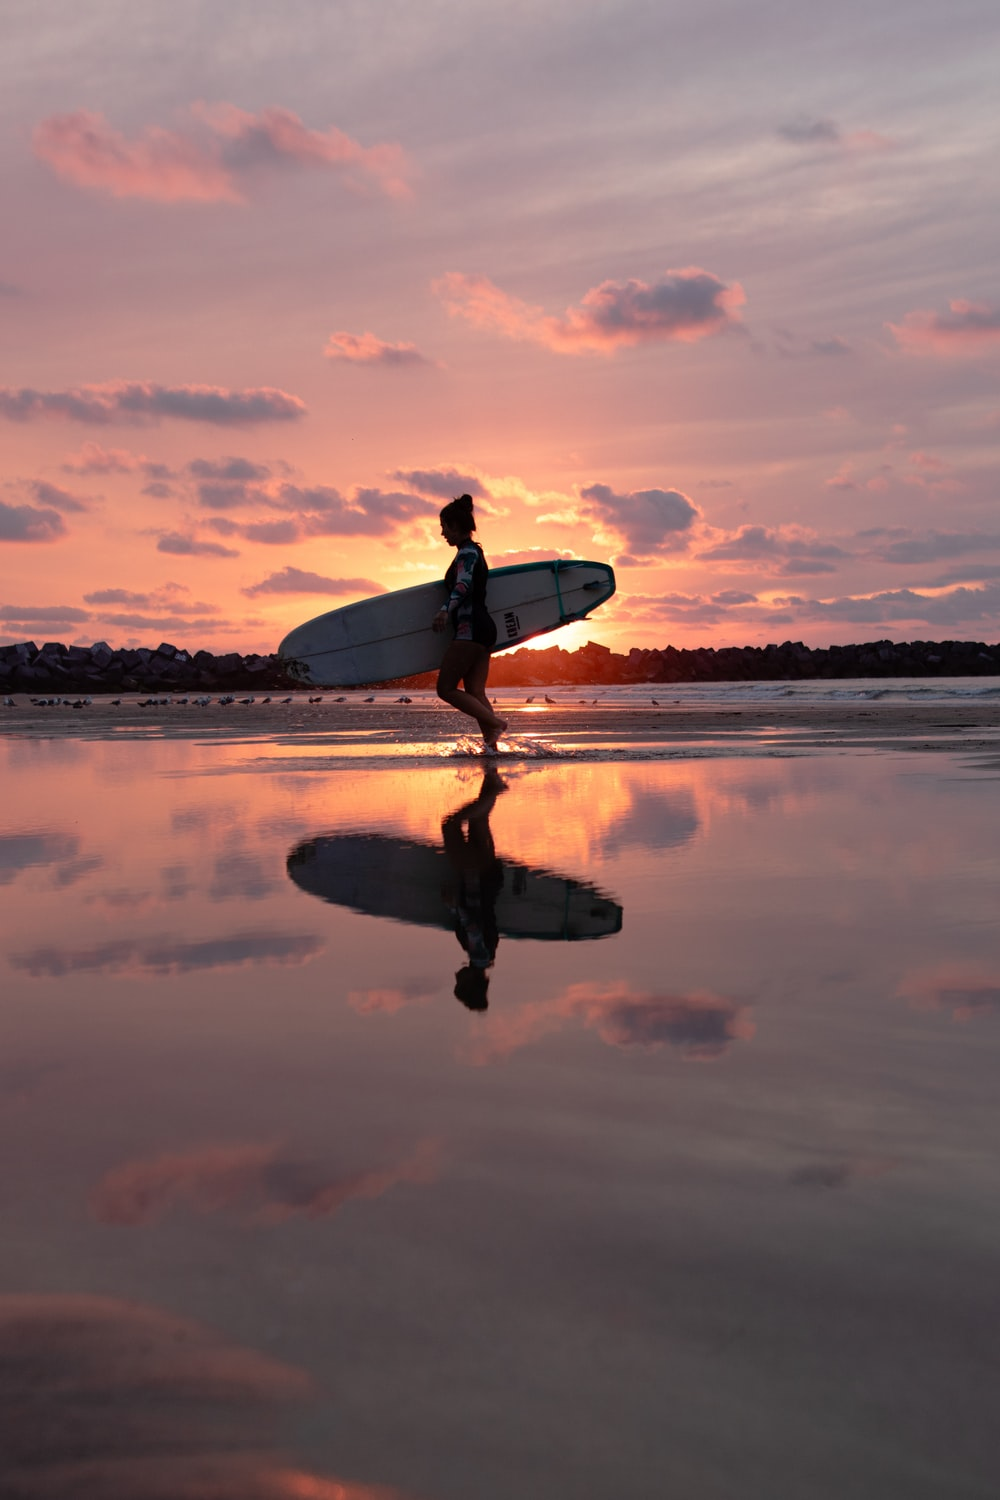 reflection of walking woman holding surfboard on body of water during golden hour